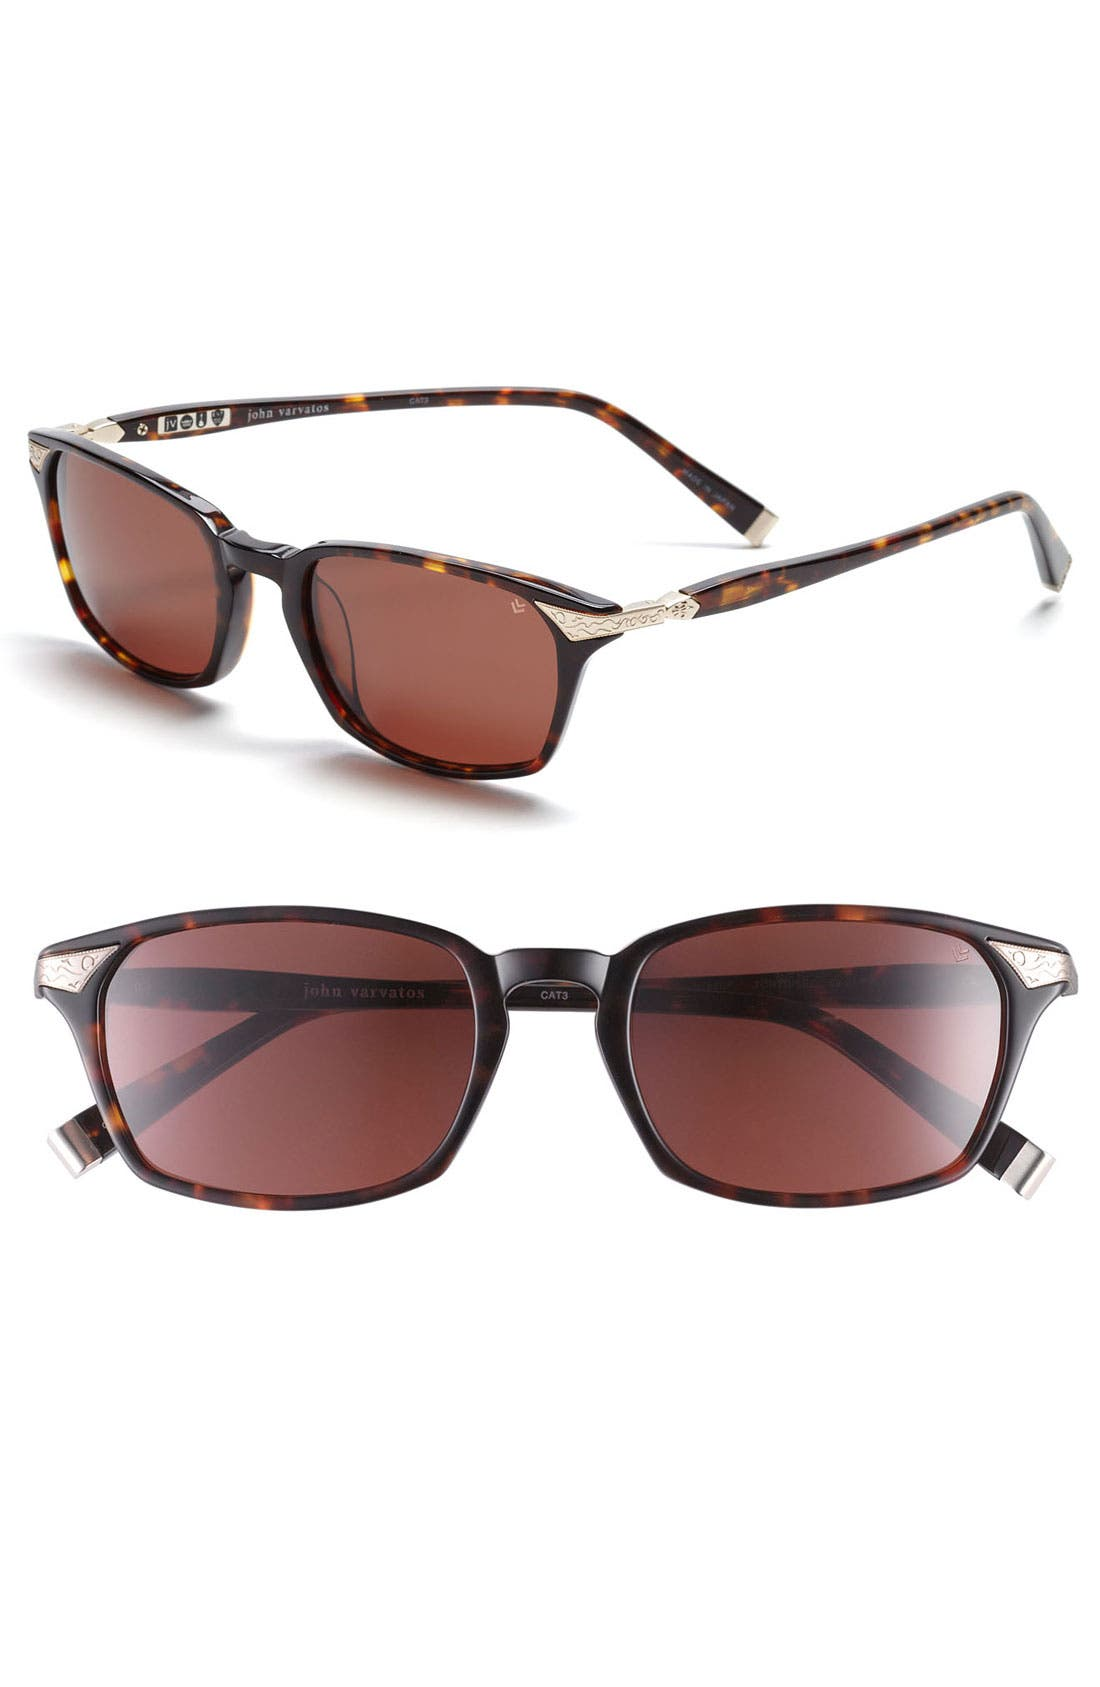 Alternate Image 1 Selected - John Varvatos Collection 53mm Sunglasses